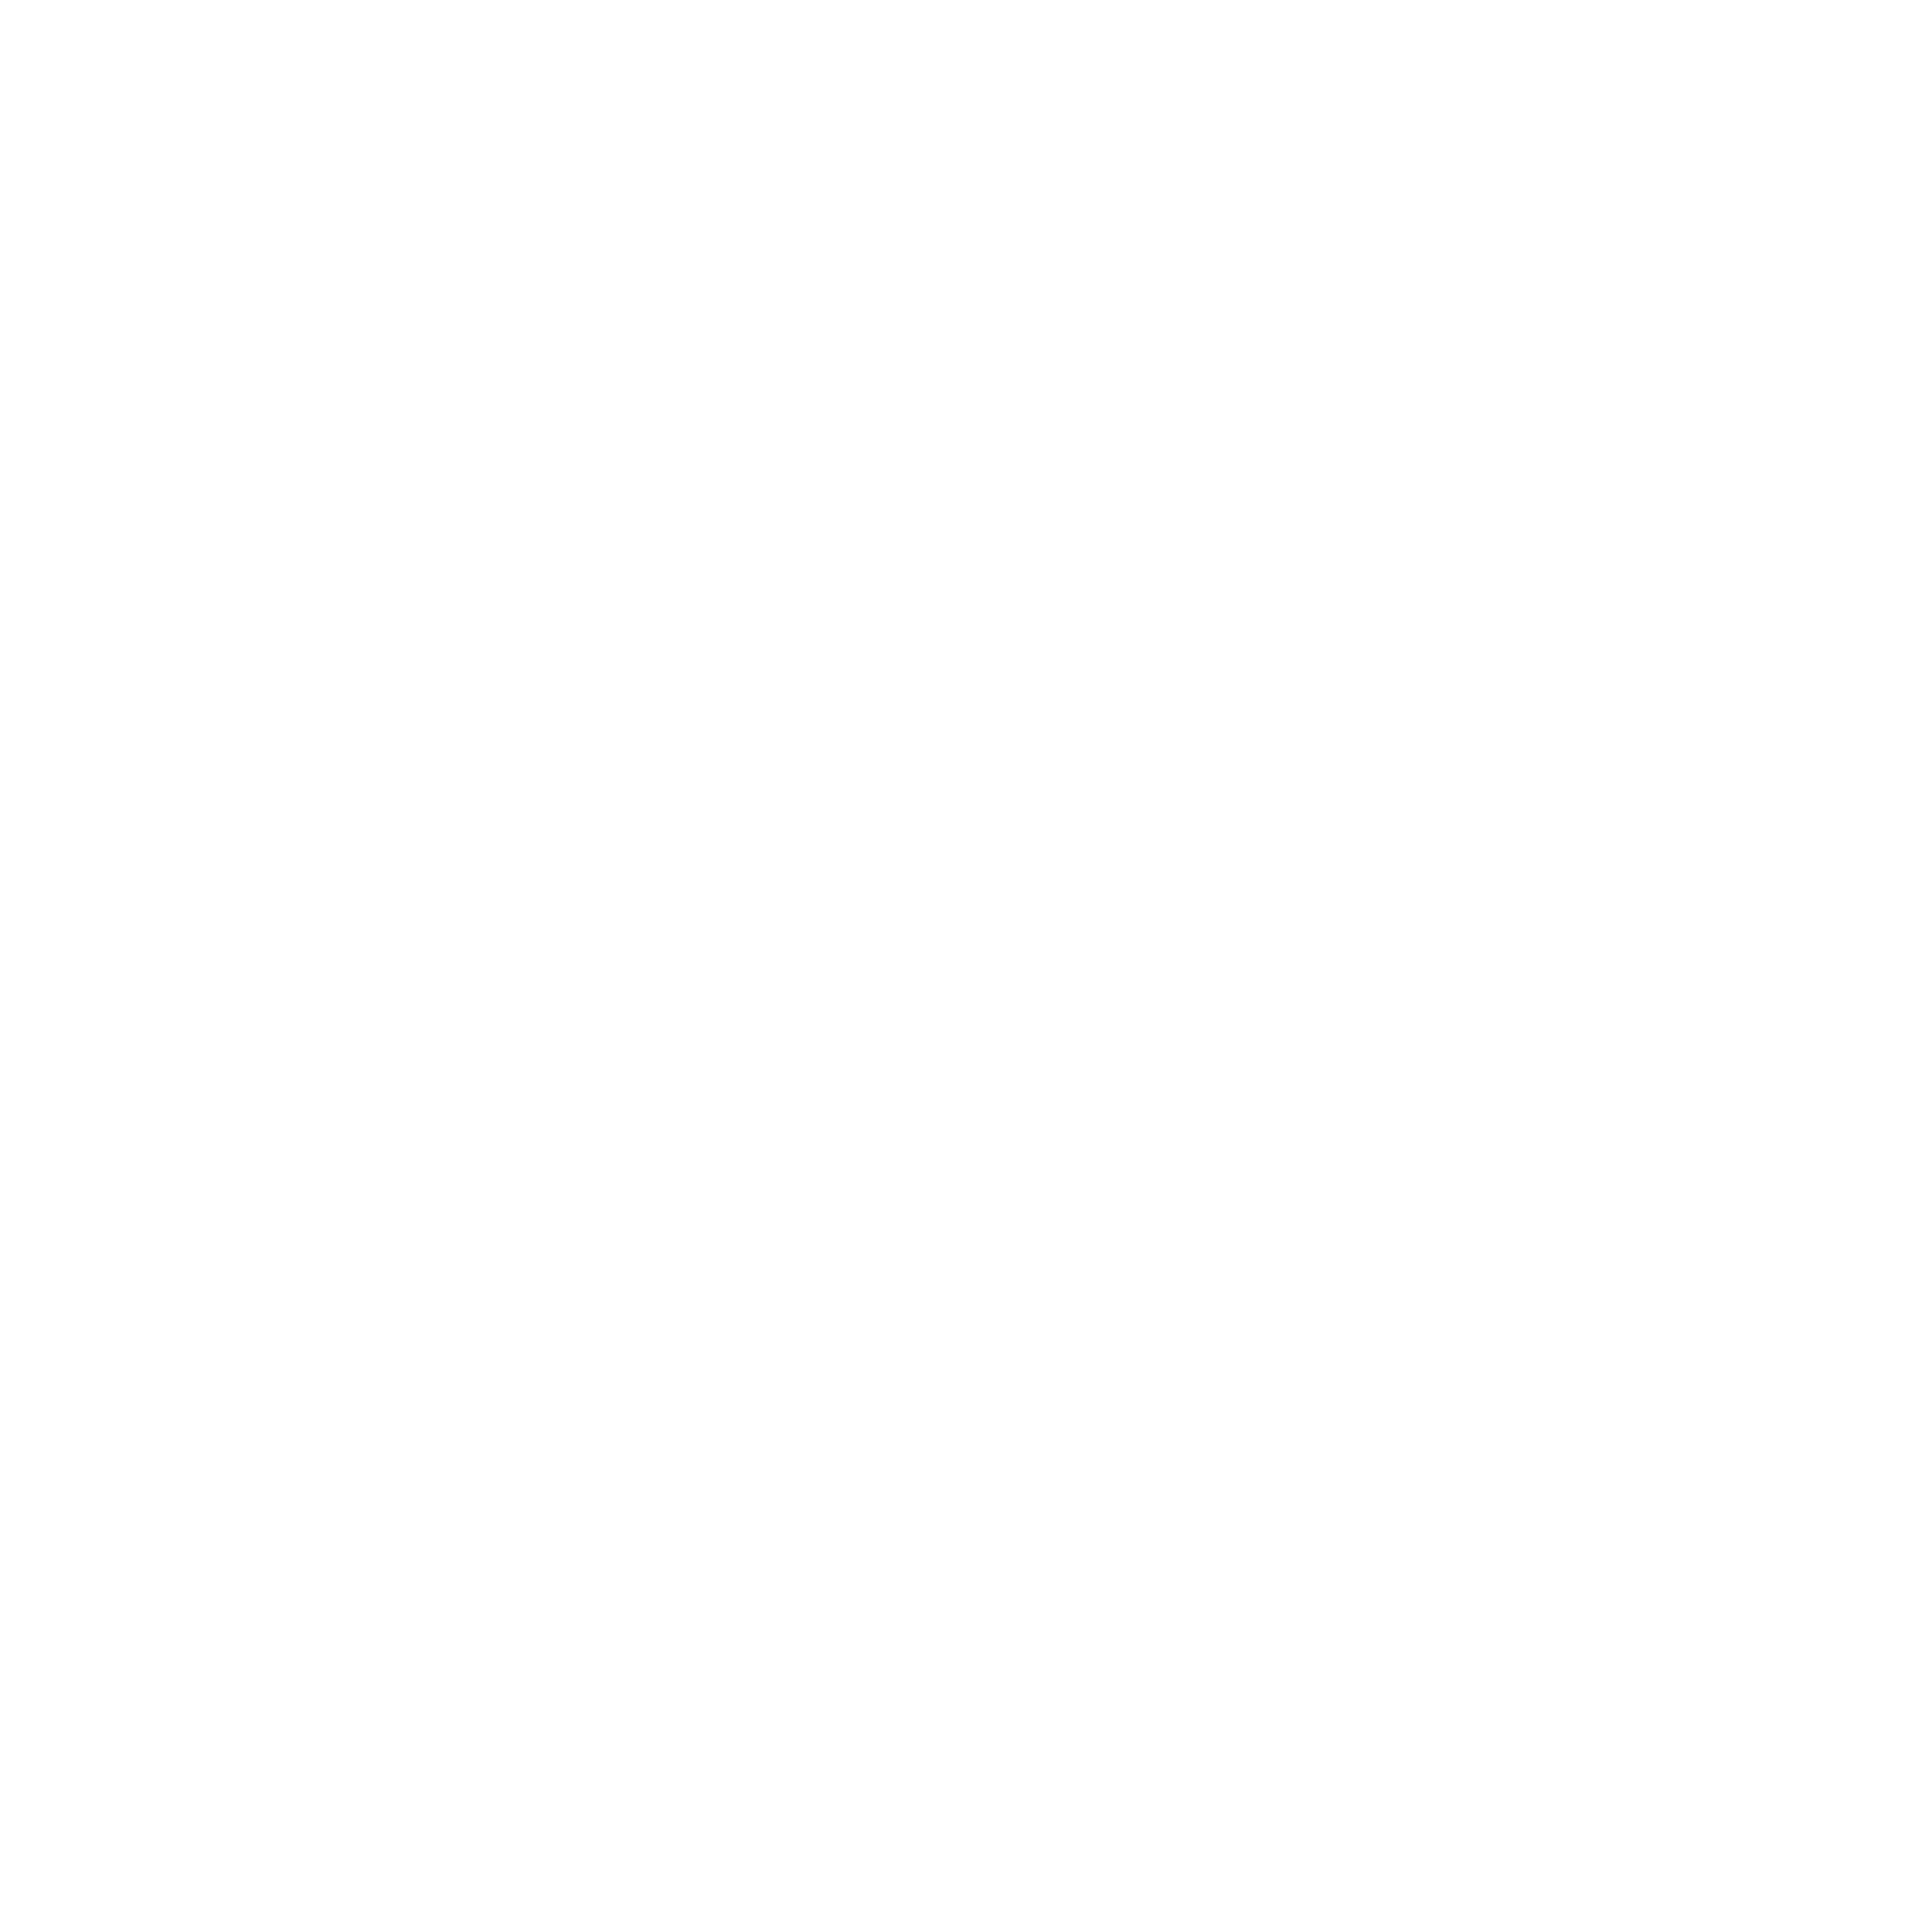 Save The Musicals